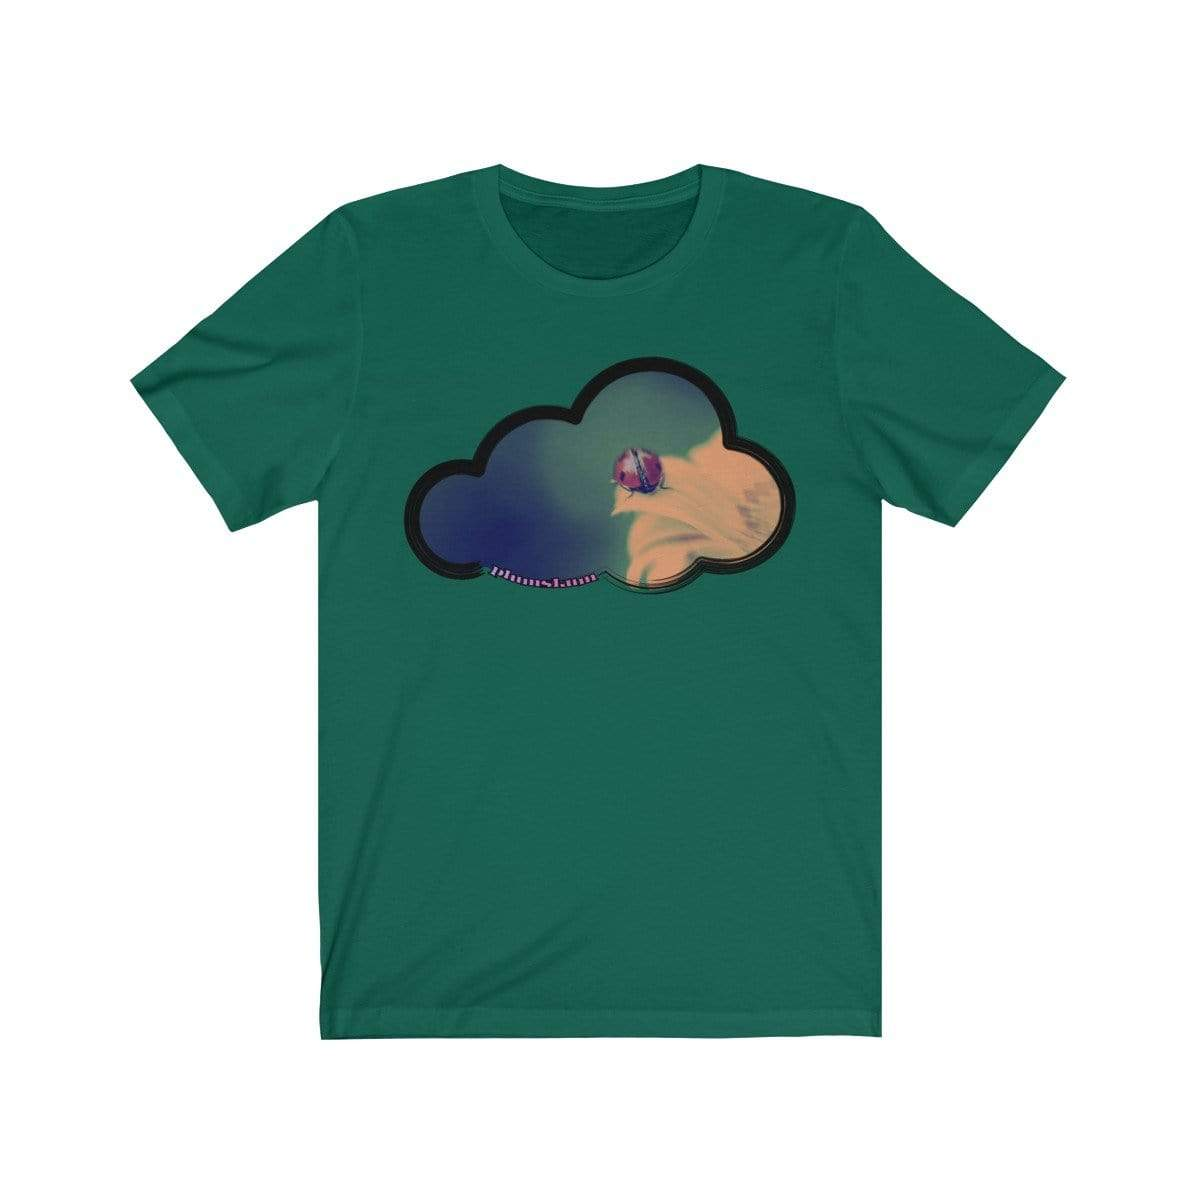 Printify T-Shirt Evergreen / M Ladybug Art Clouds Tee